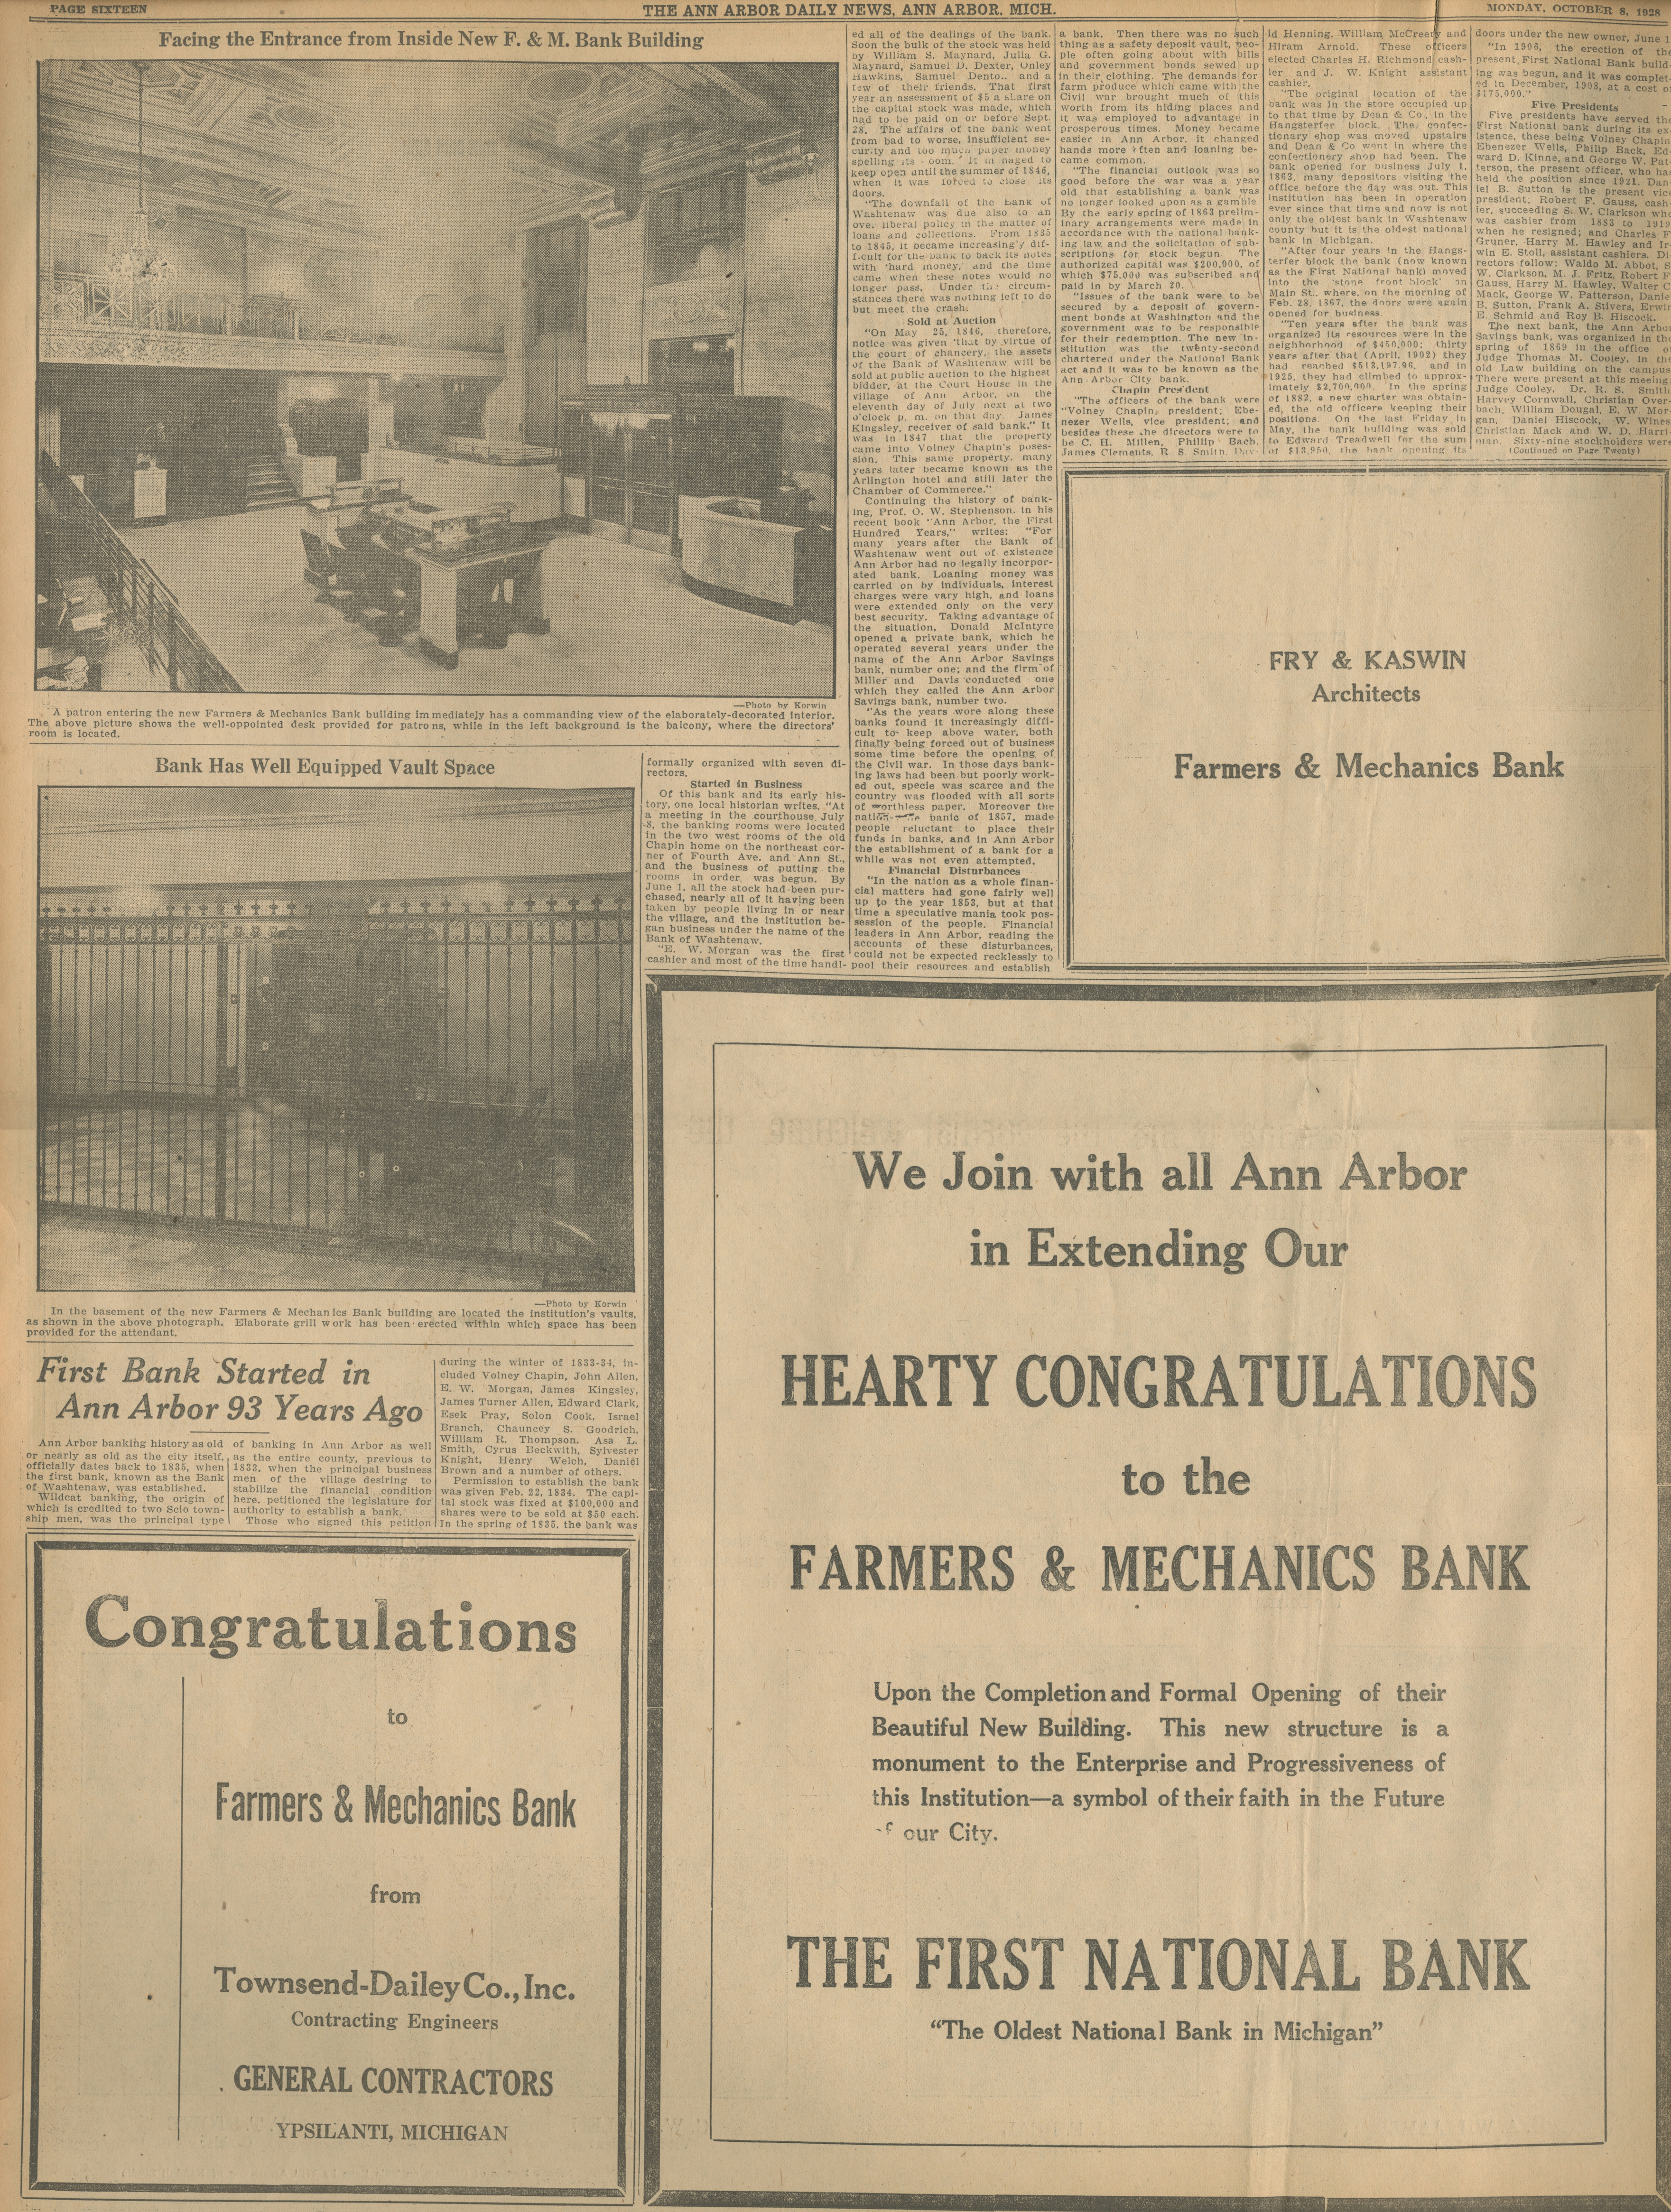 First Bank Started in Ann Arbor 93 Years Ago image